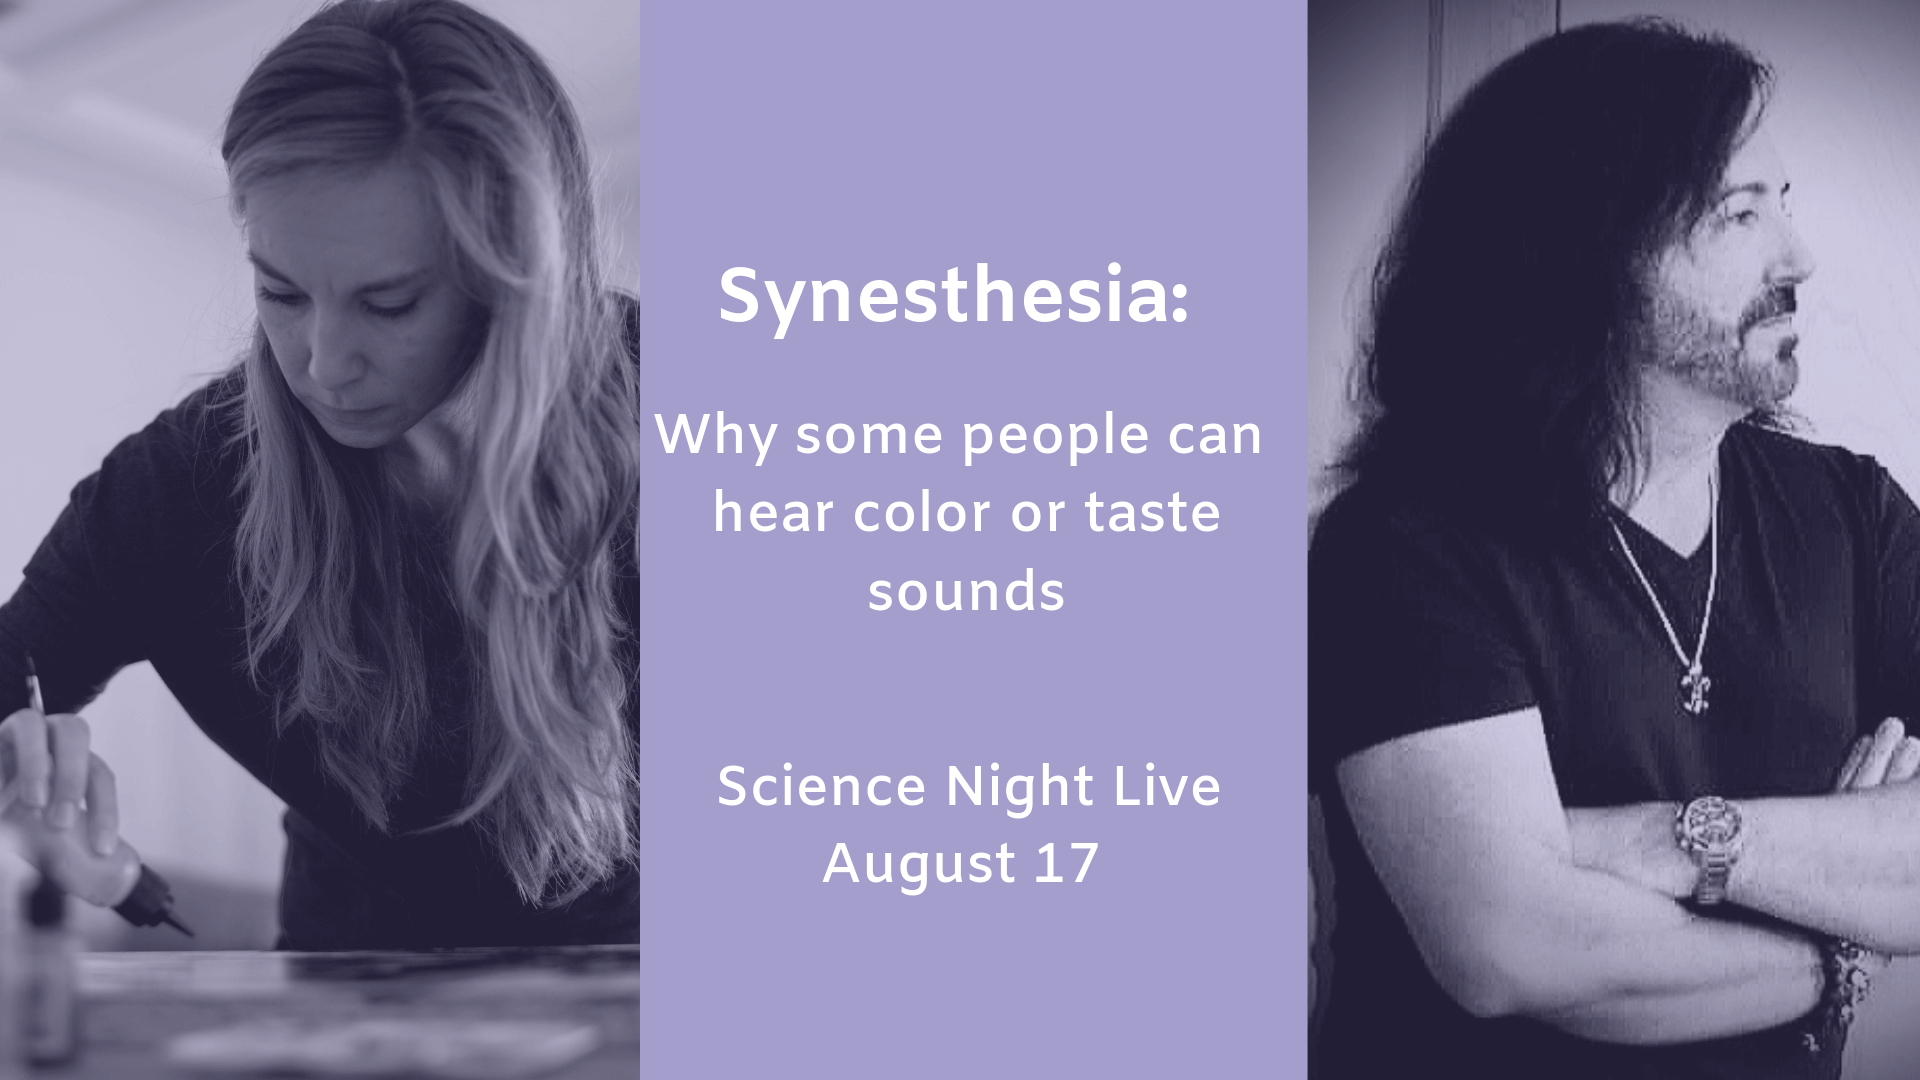 Synethesia: Why some people can hear color and taste sounds flyer